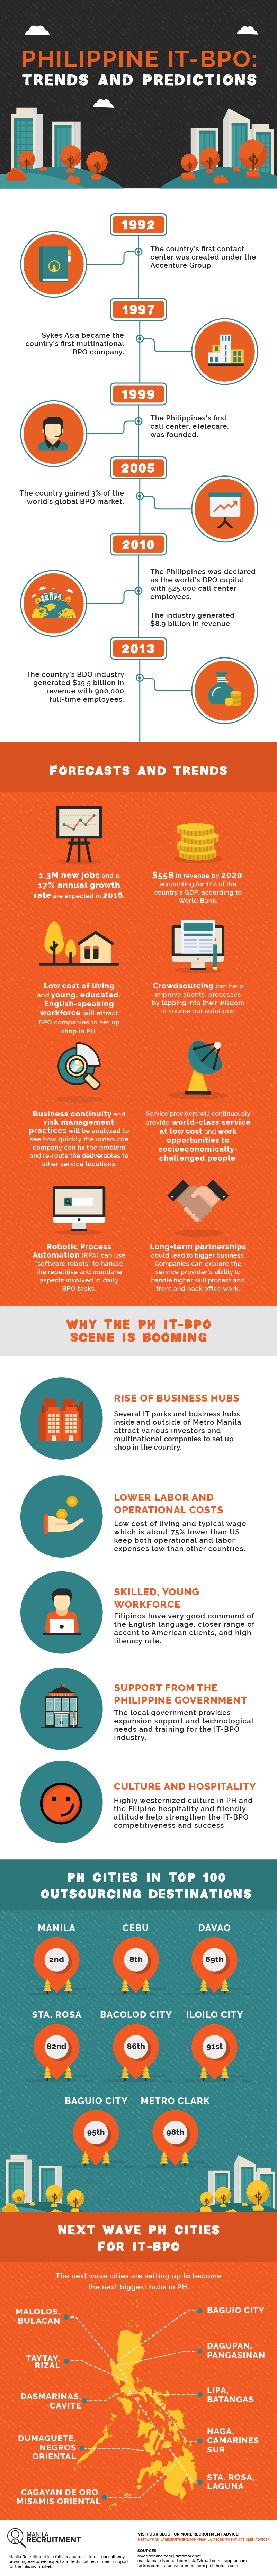 Philippine IT-BPO Trends and Predictions